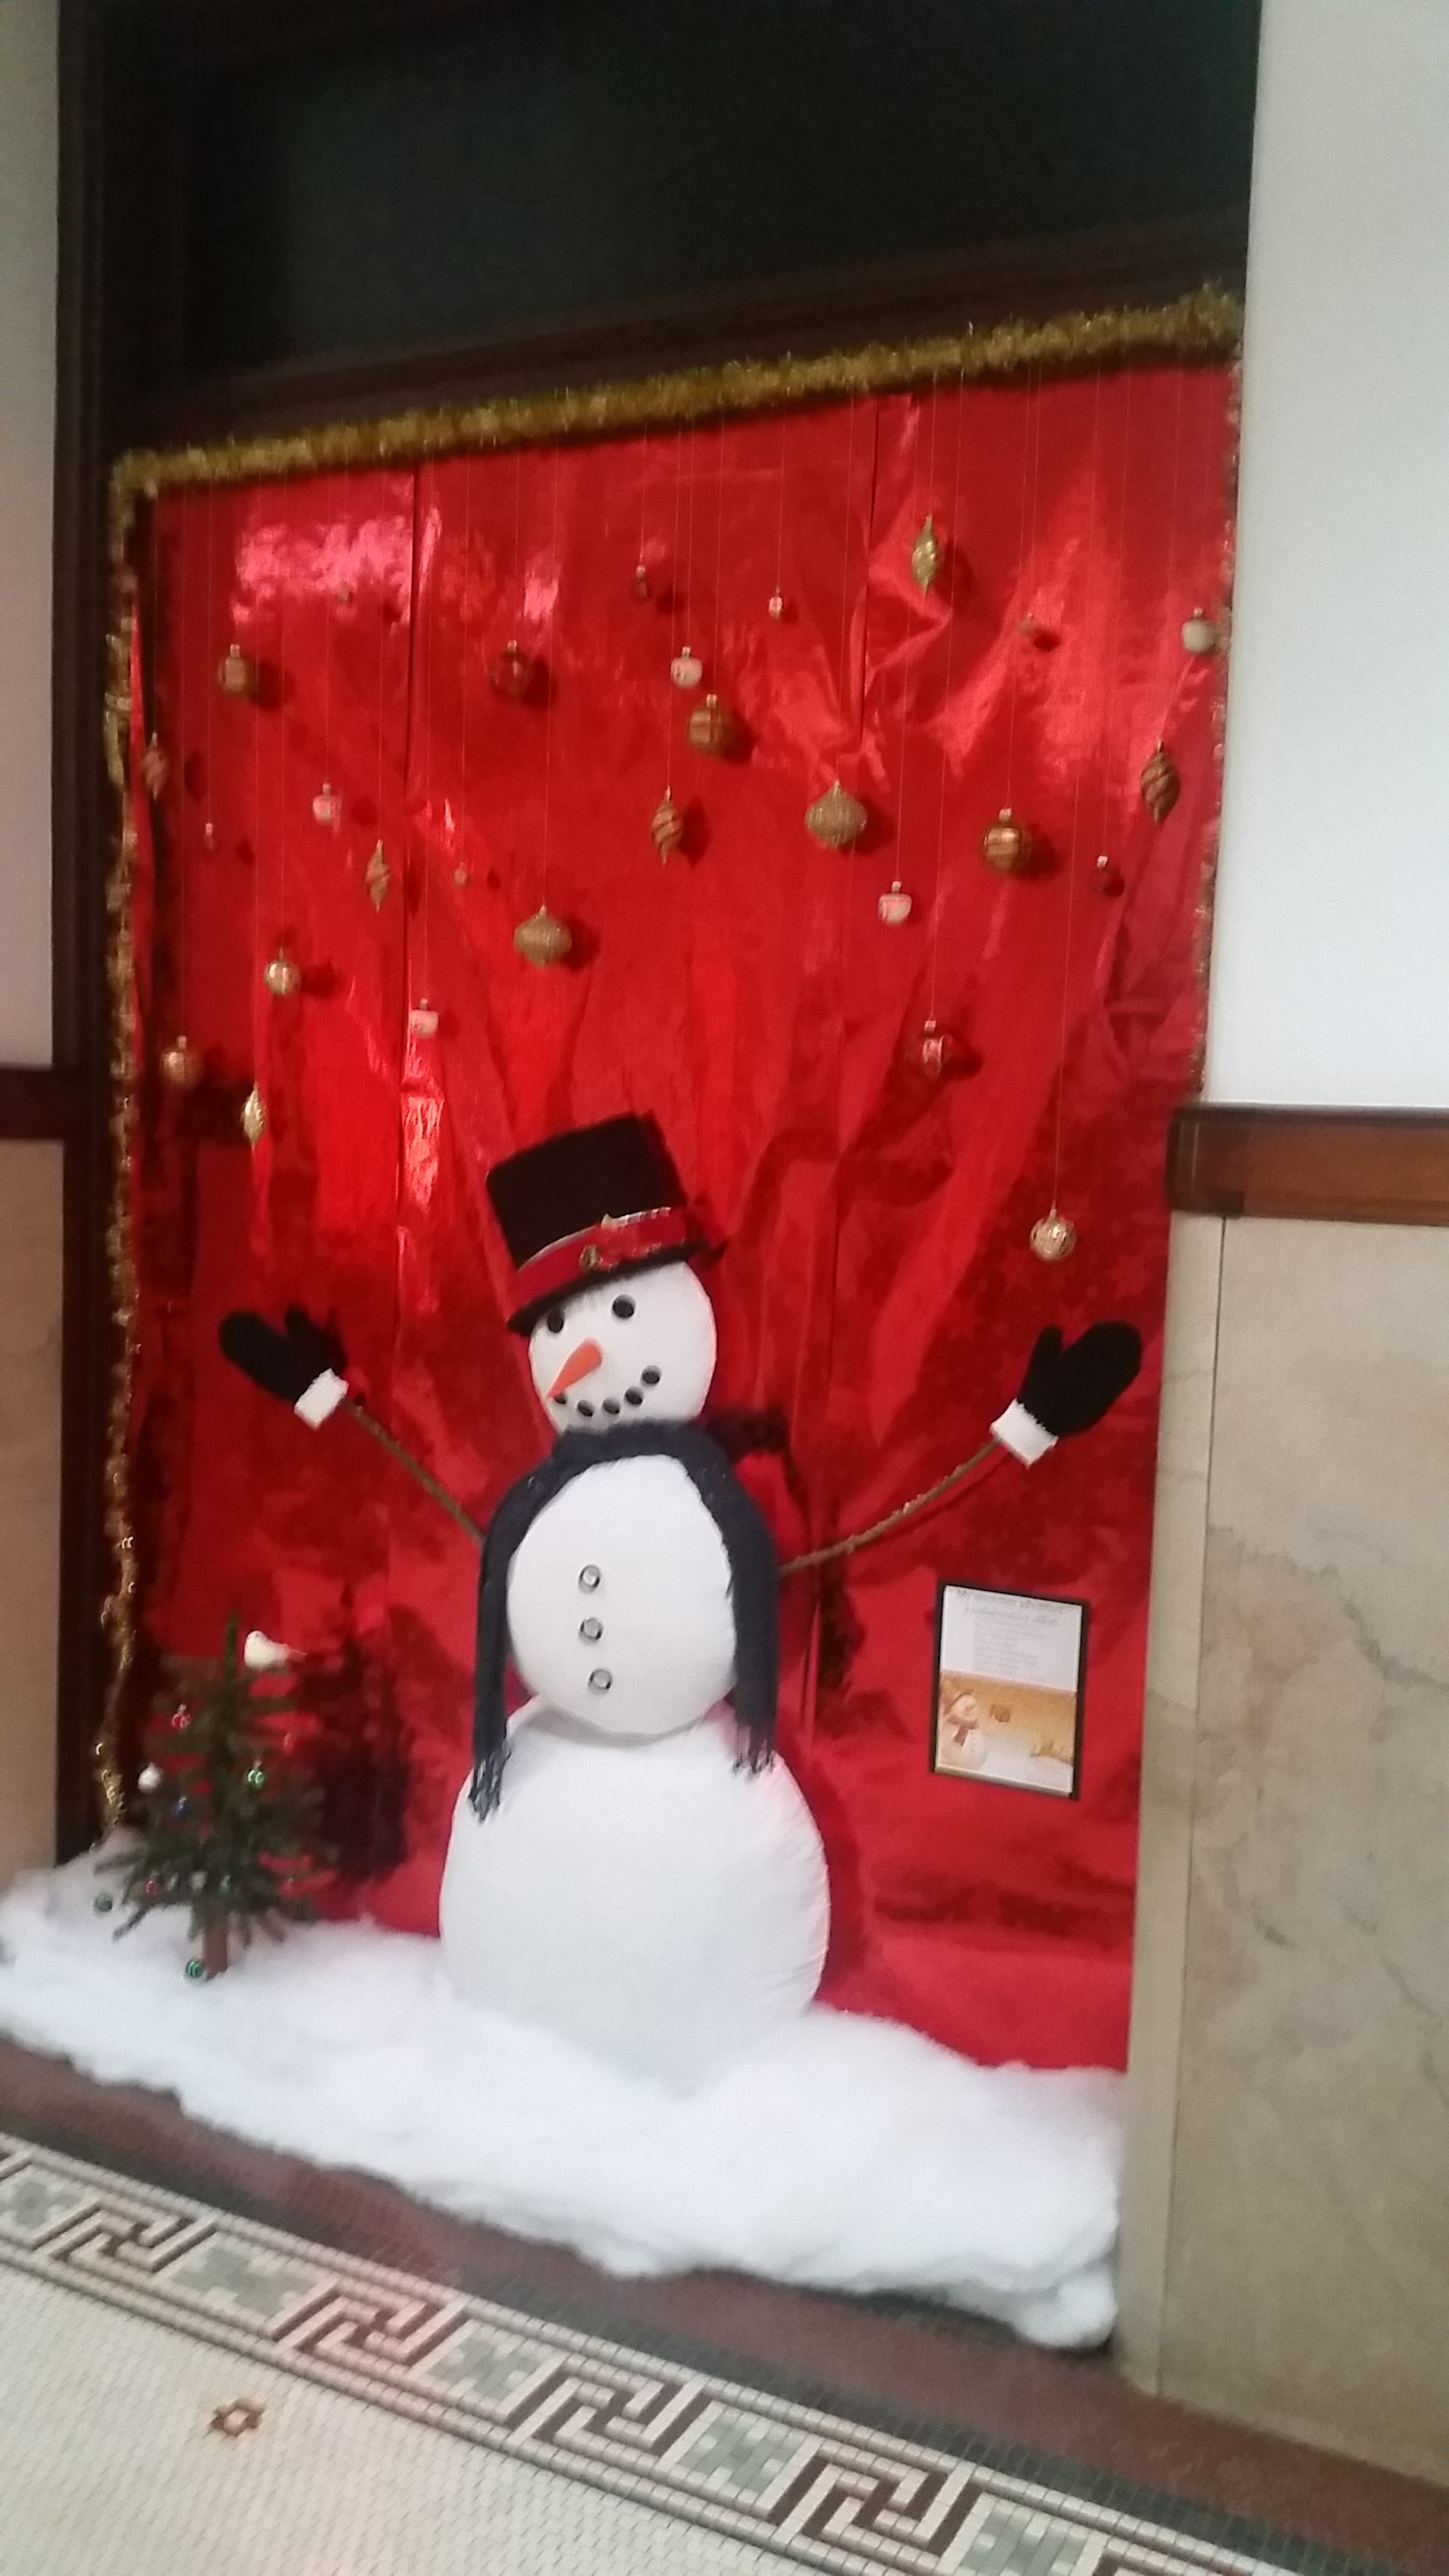 Picture of the snowman outside courtroom B